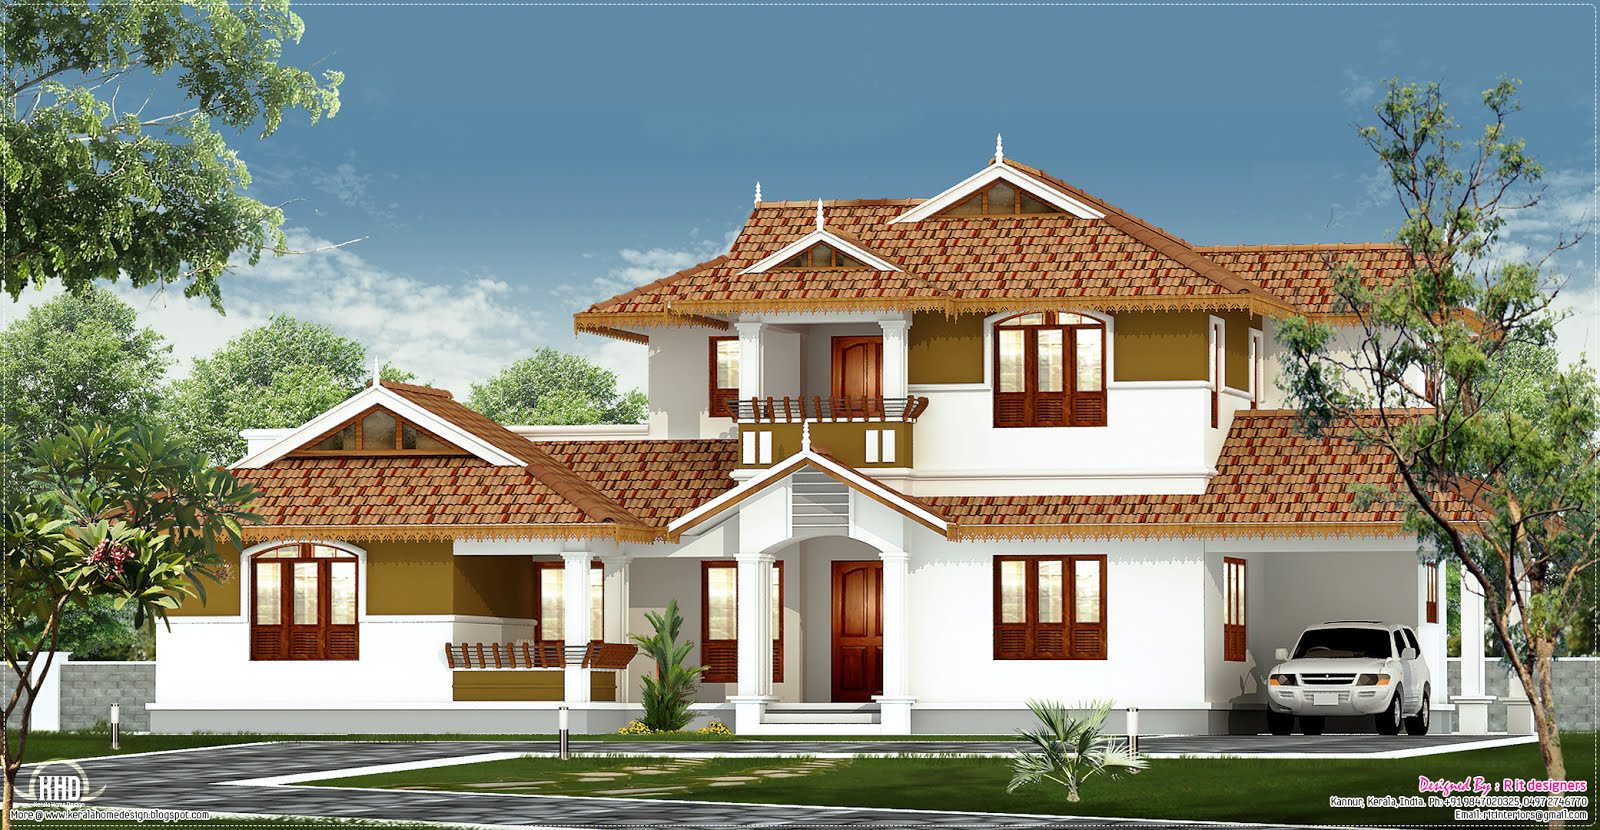 Kerala house plans below 1000 square feet joy studio for House plans below 1000 sq ft kerala